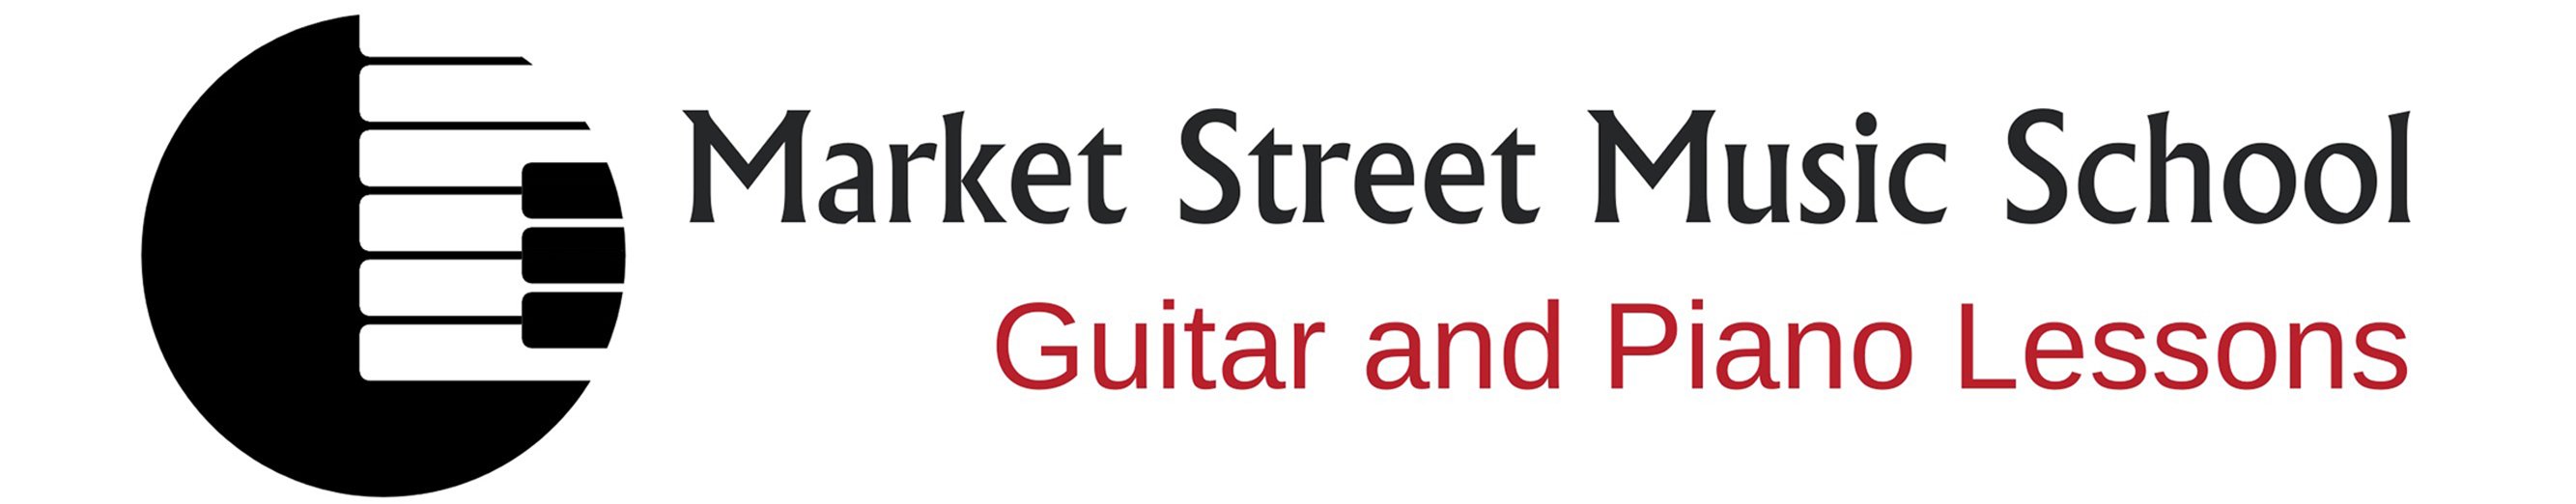 Seattle Guitar Lessons Seattle Piano Lessons - Seattle Guitar Lessons Seattle Piano Lessons